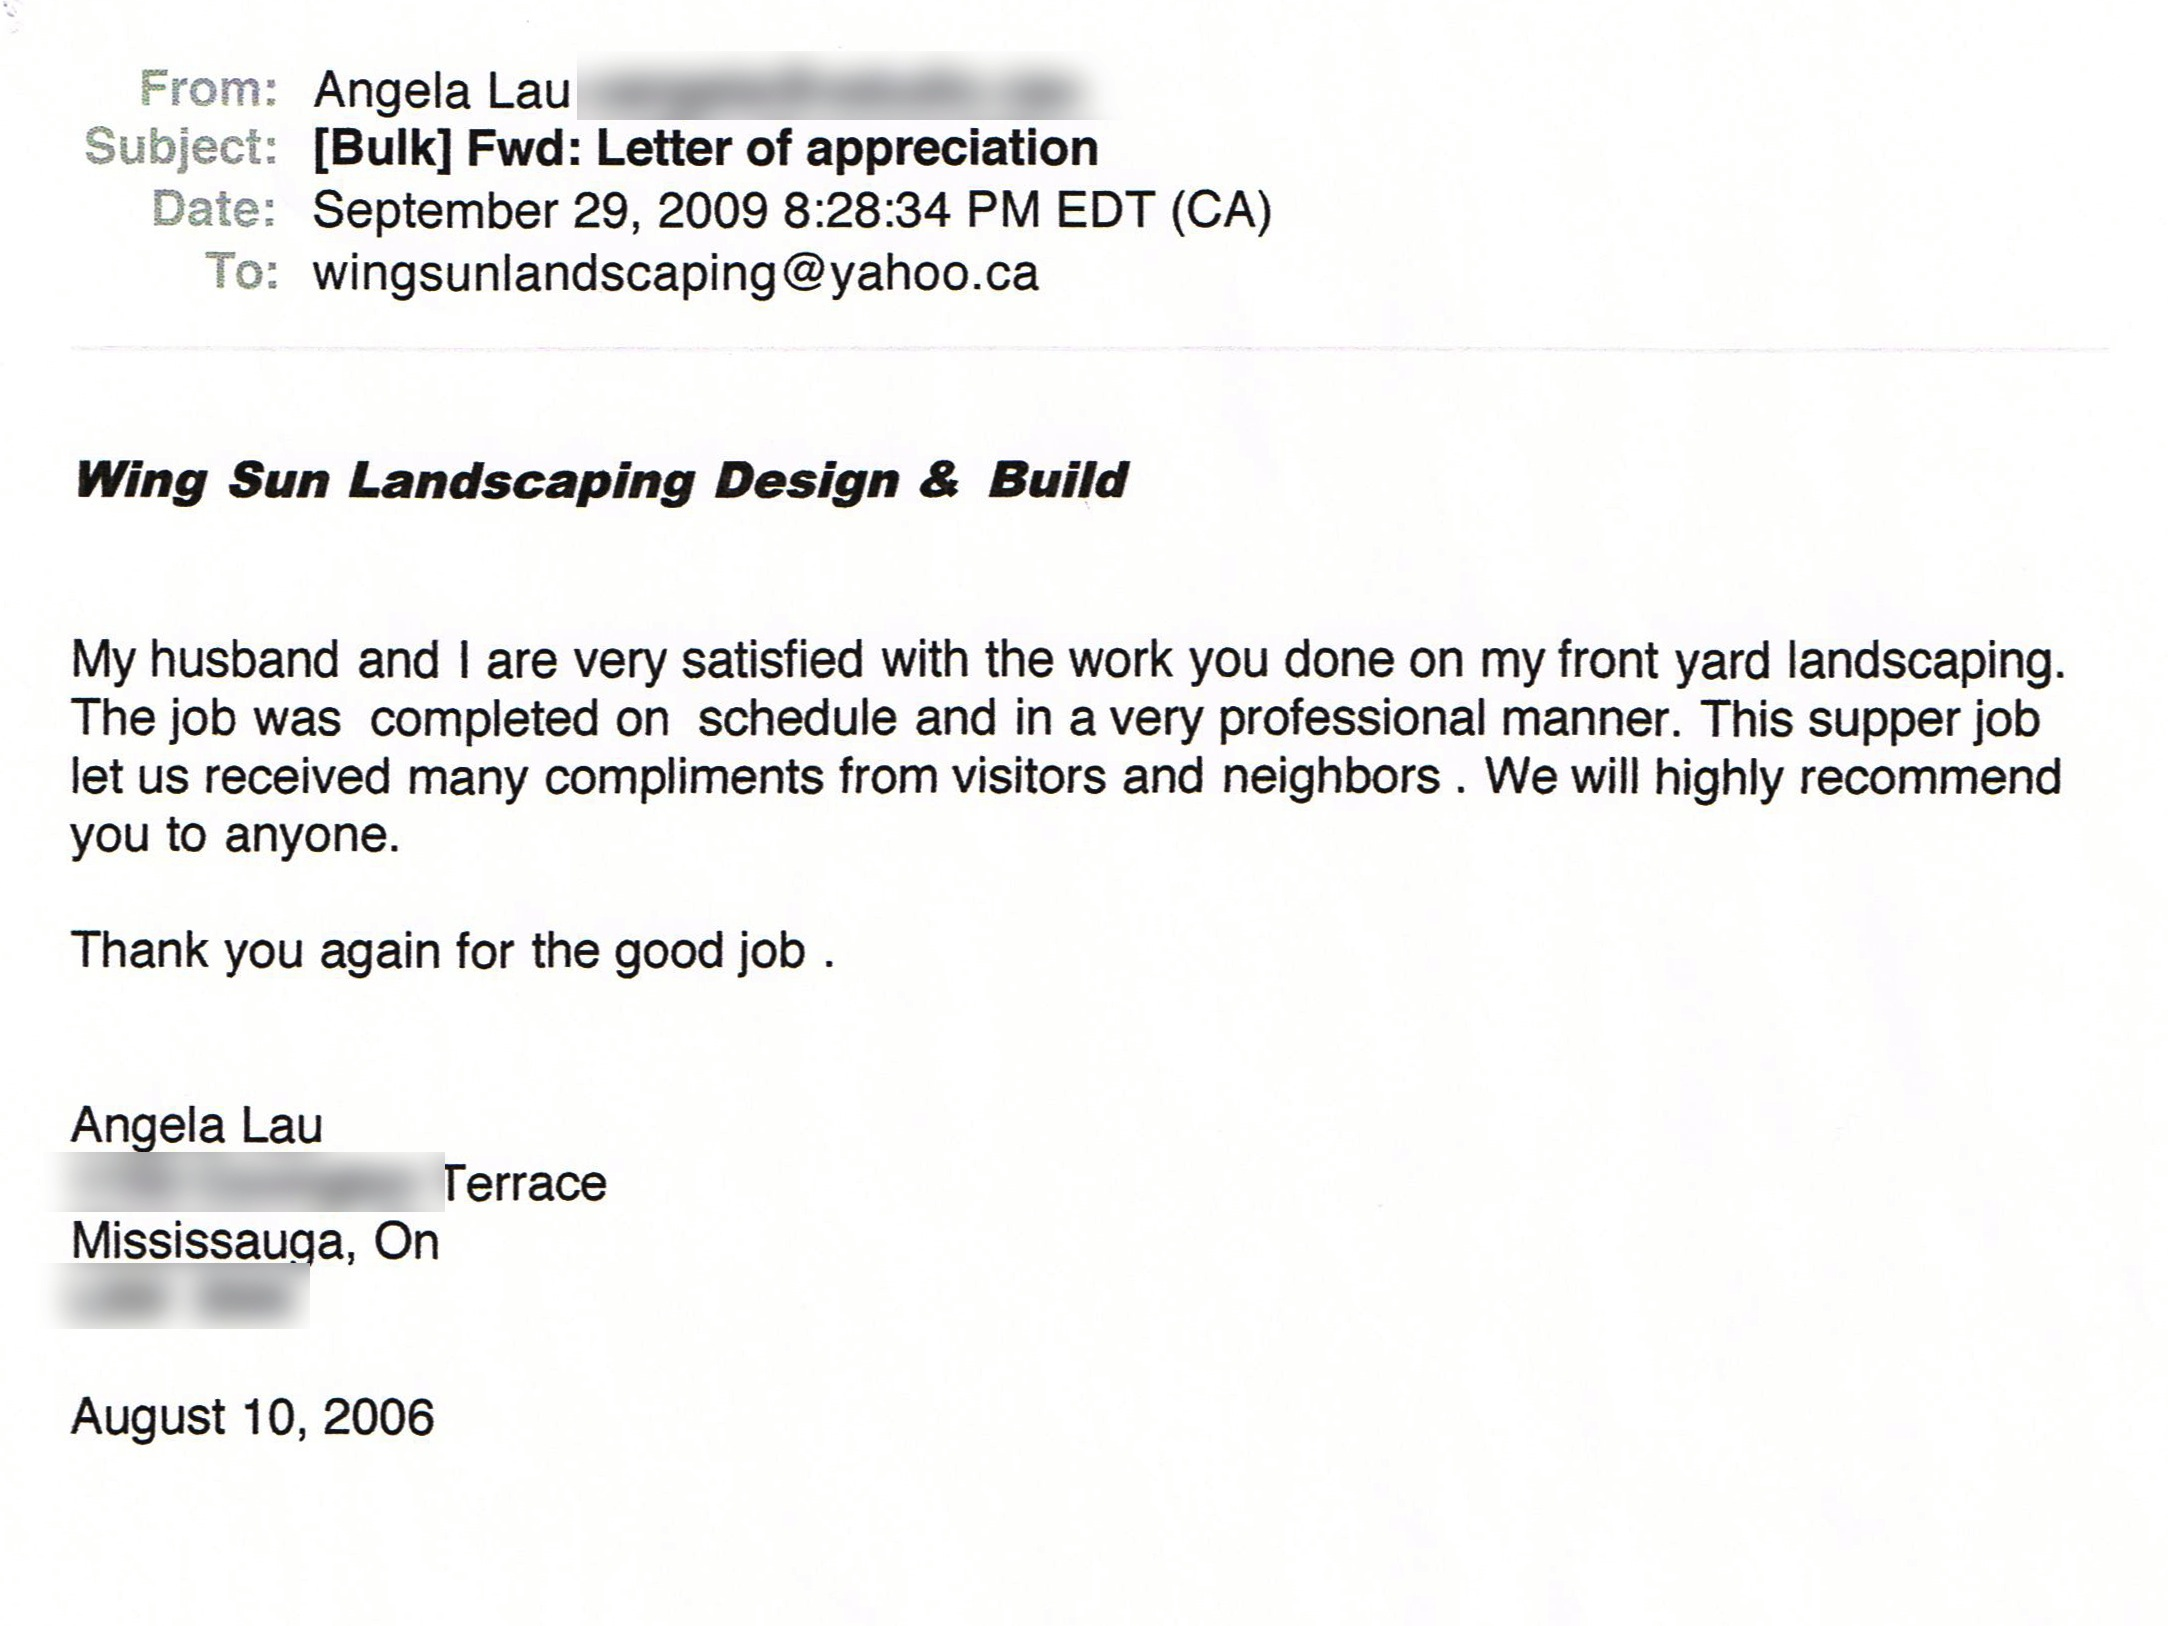 Angela Lau, Mississauga, On - Wing Sun Landscaping And Build